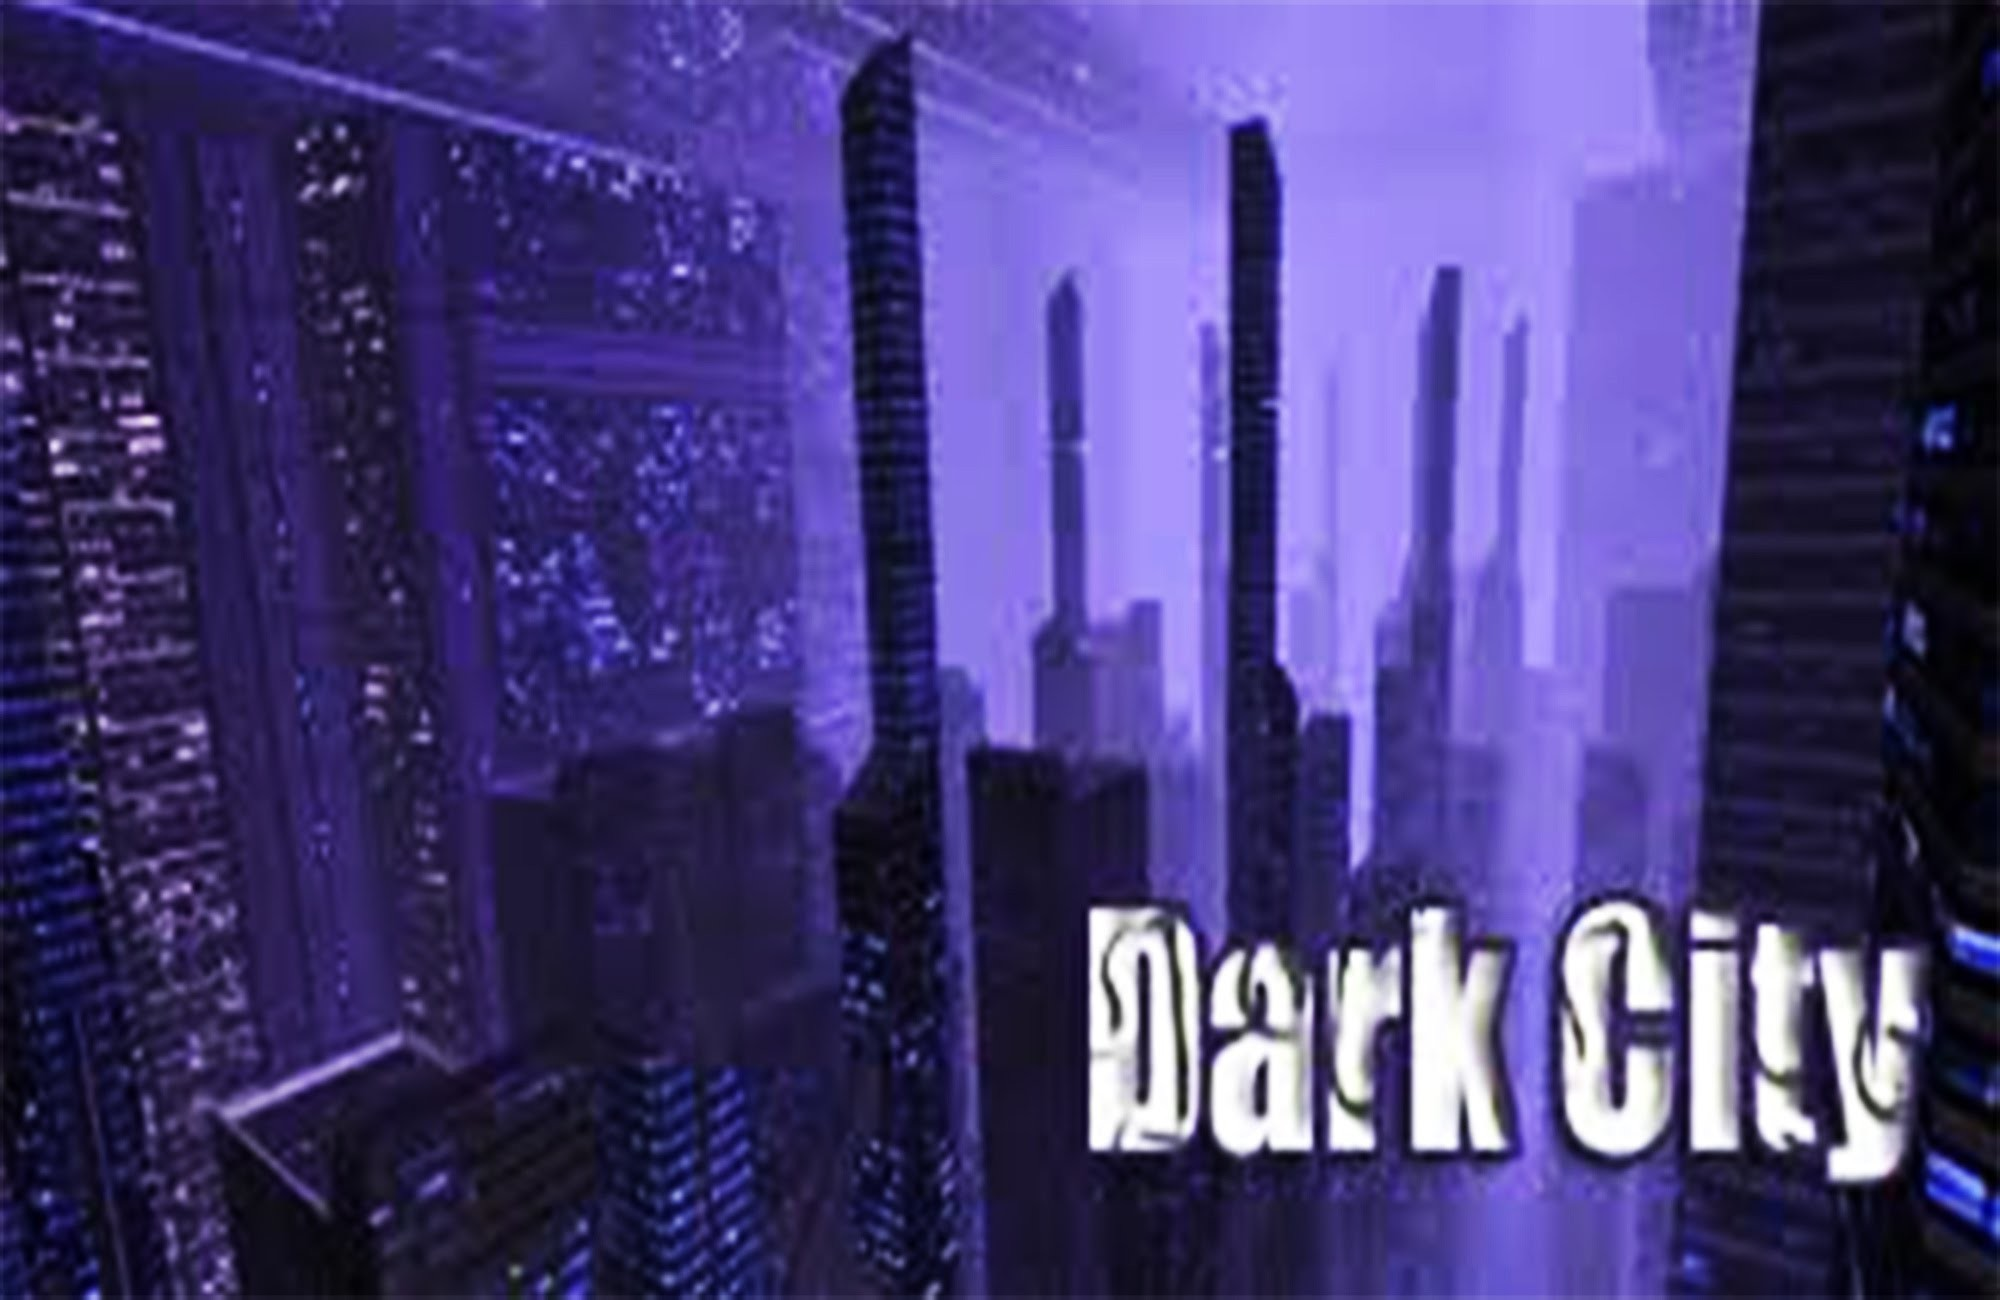 2000x1300 3D LIVE WALLPAPER - DARK CITY ----FENOMENALNI 3D WALLPAPER !!!